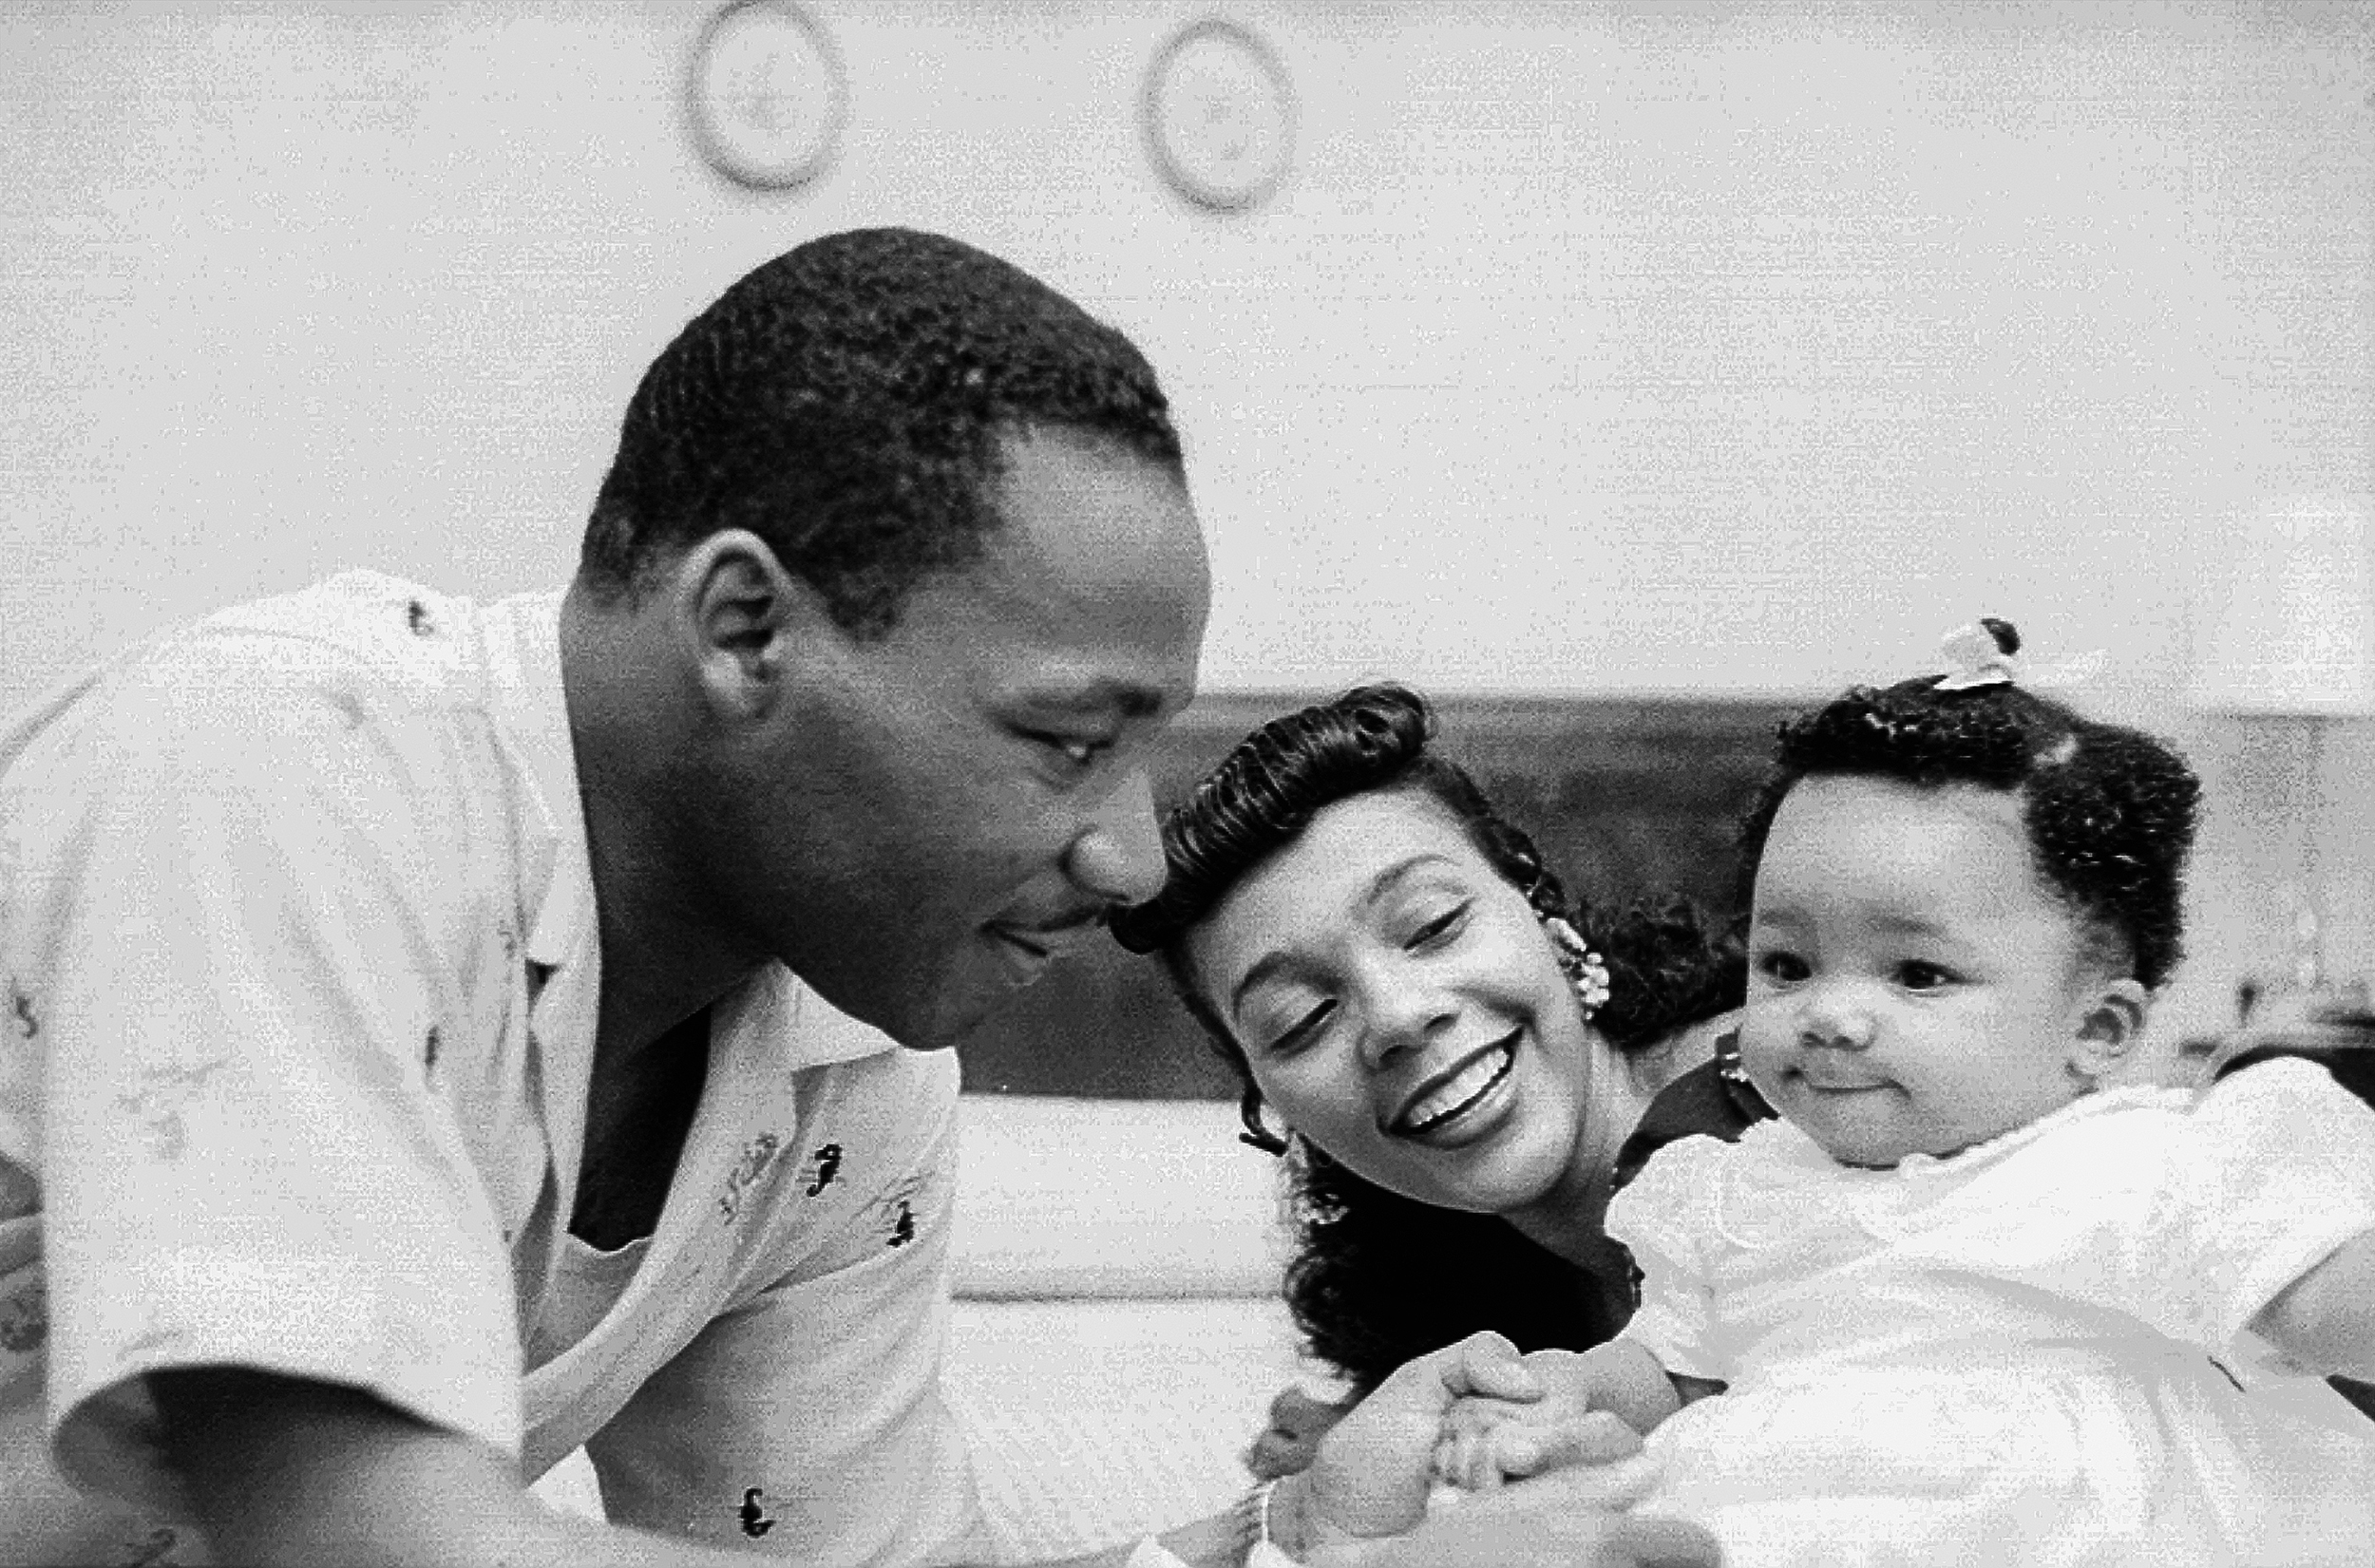 Martin Luther King, Jr. at home with his wife Coretta and first child Yolanda, 1956. (Credit: Michael Ochs Archives/Getty Images)